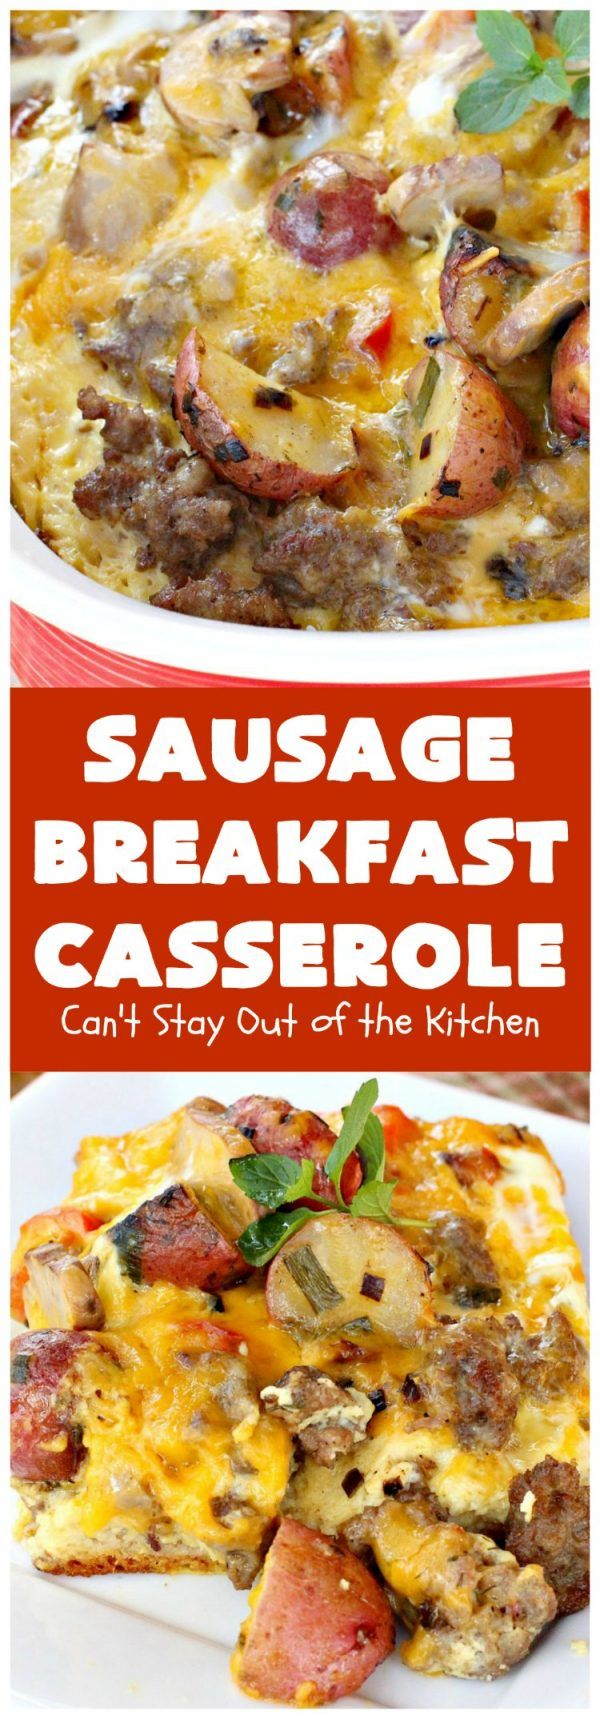 Sausage and Gravy Breakfast Casserole Sausage Breakfast Casserole | Can't Stay Out of the Kitchen | this is an amped up version of a with fried bell peppers, & loads of We love it for or breakfast because you can make it the night before & pop it in the oven an hour before you need it!